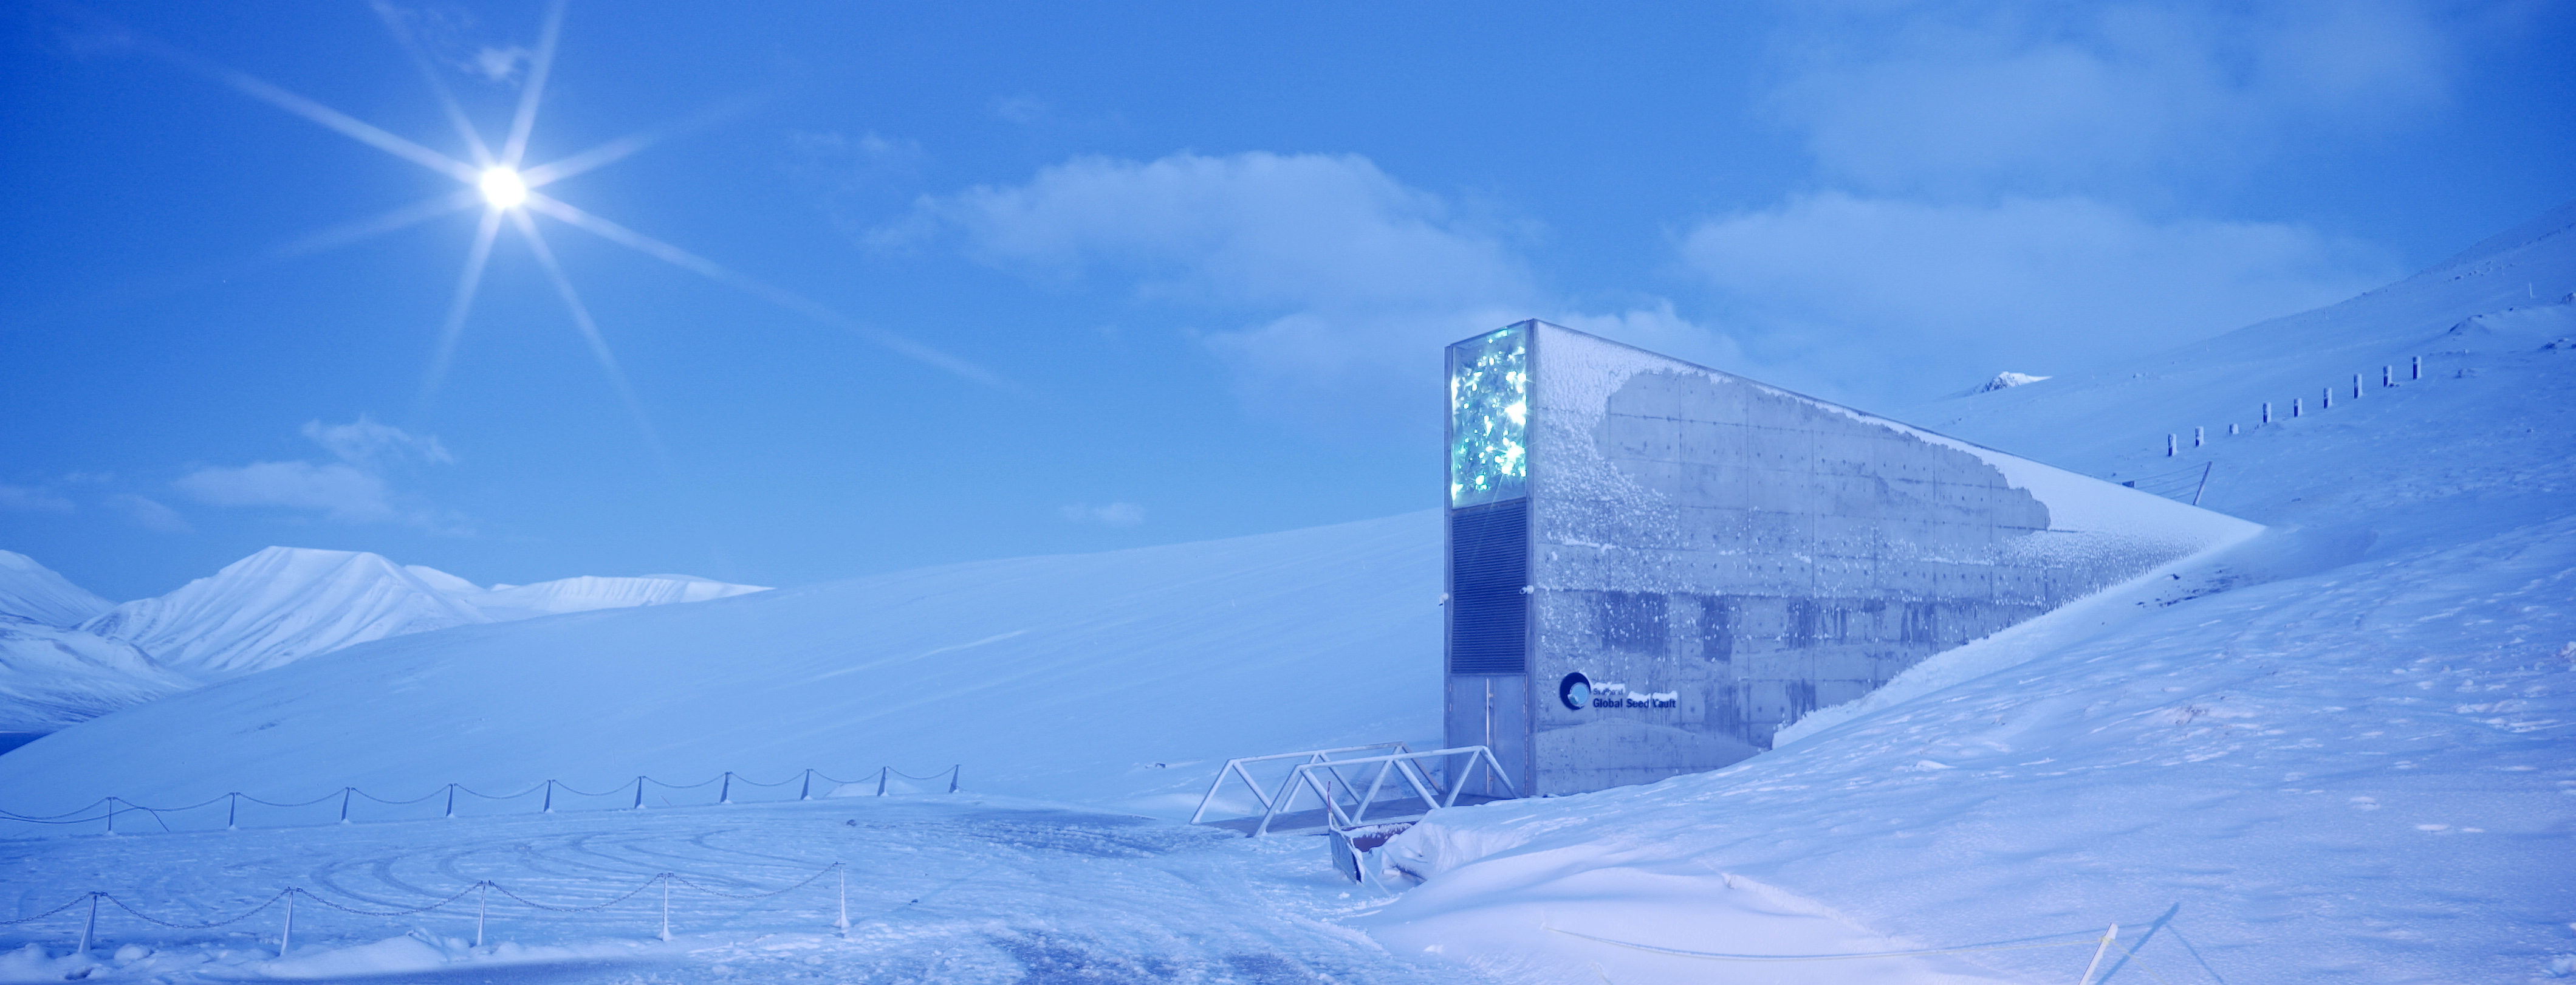 Estonia celebrated its 100 Year Anniversary with first deposit to Svalbard  Global Seed Vault - NordGen